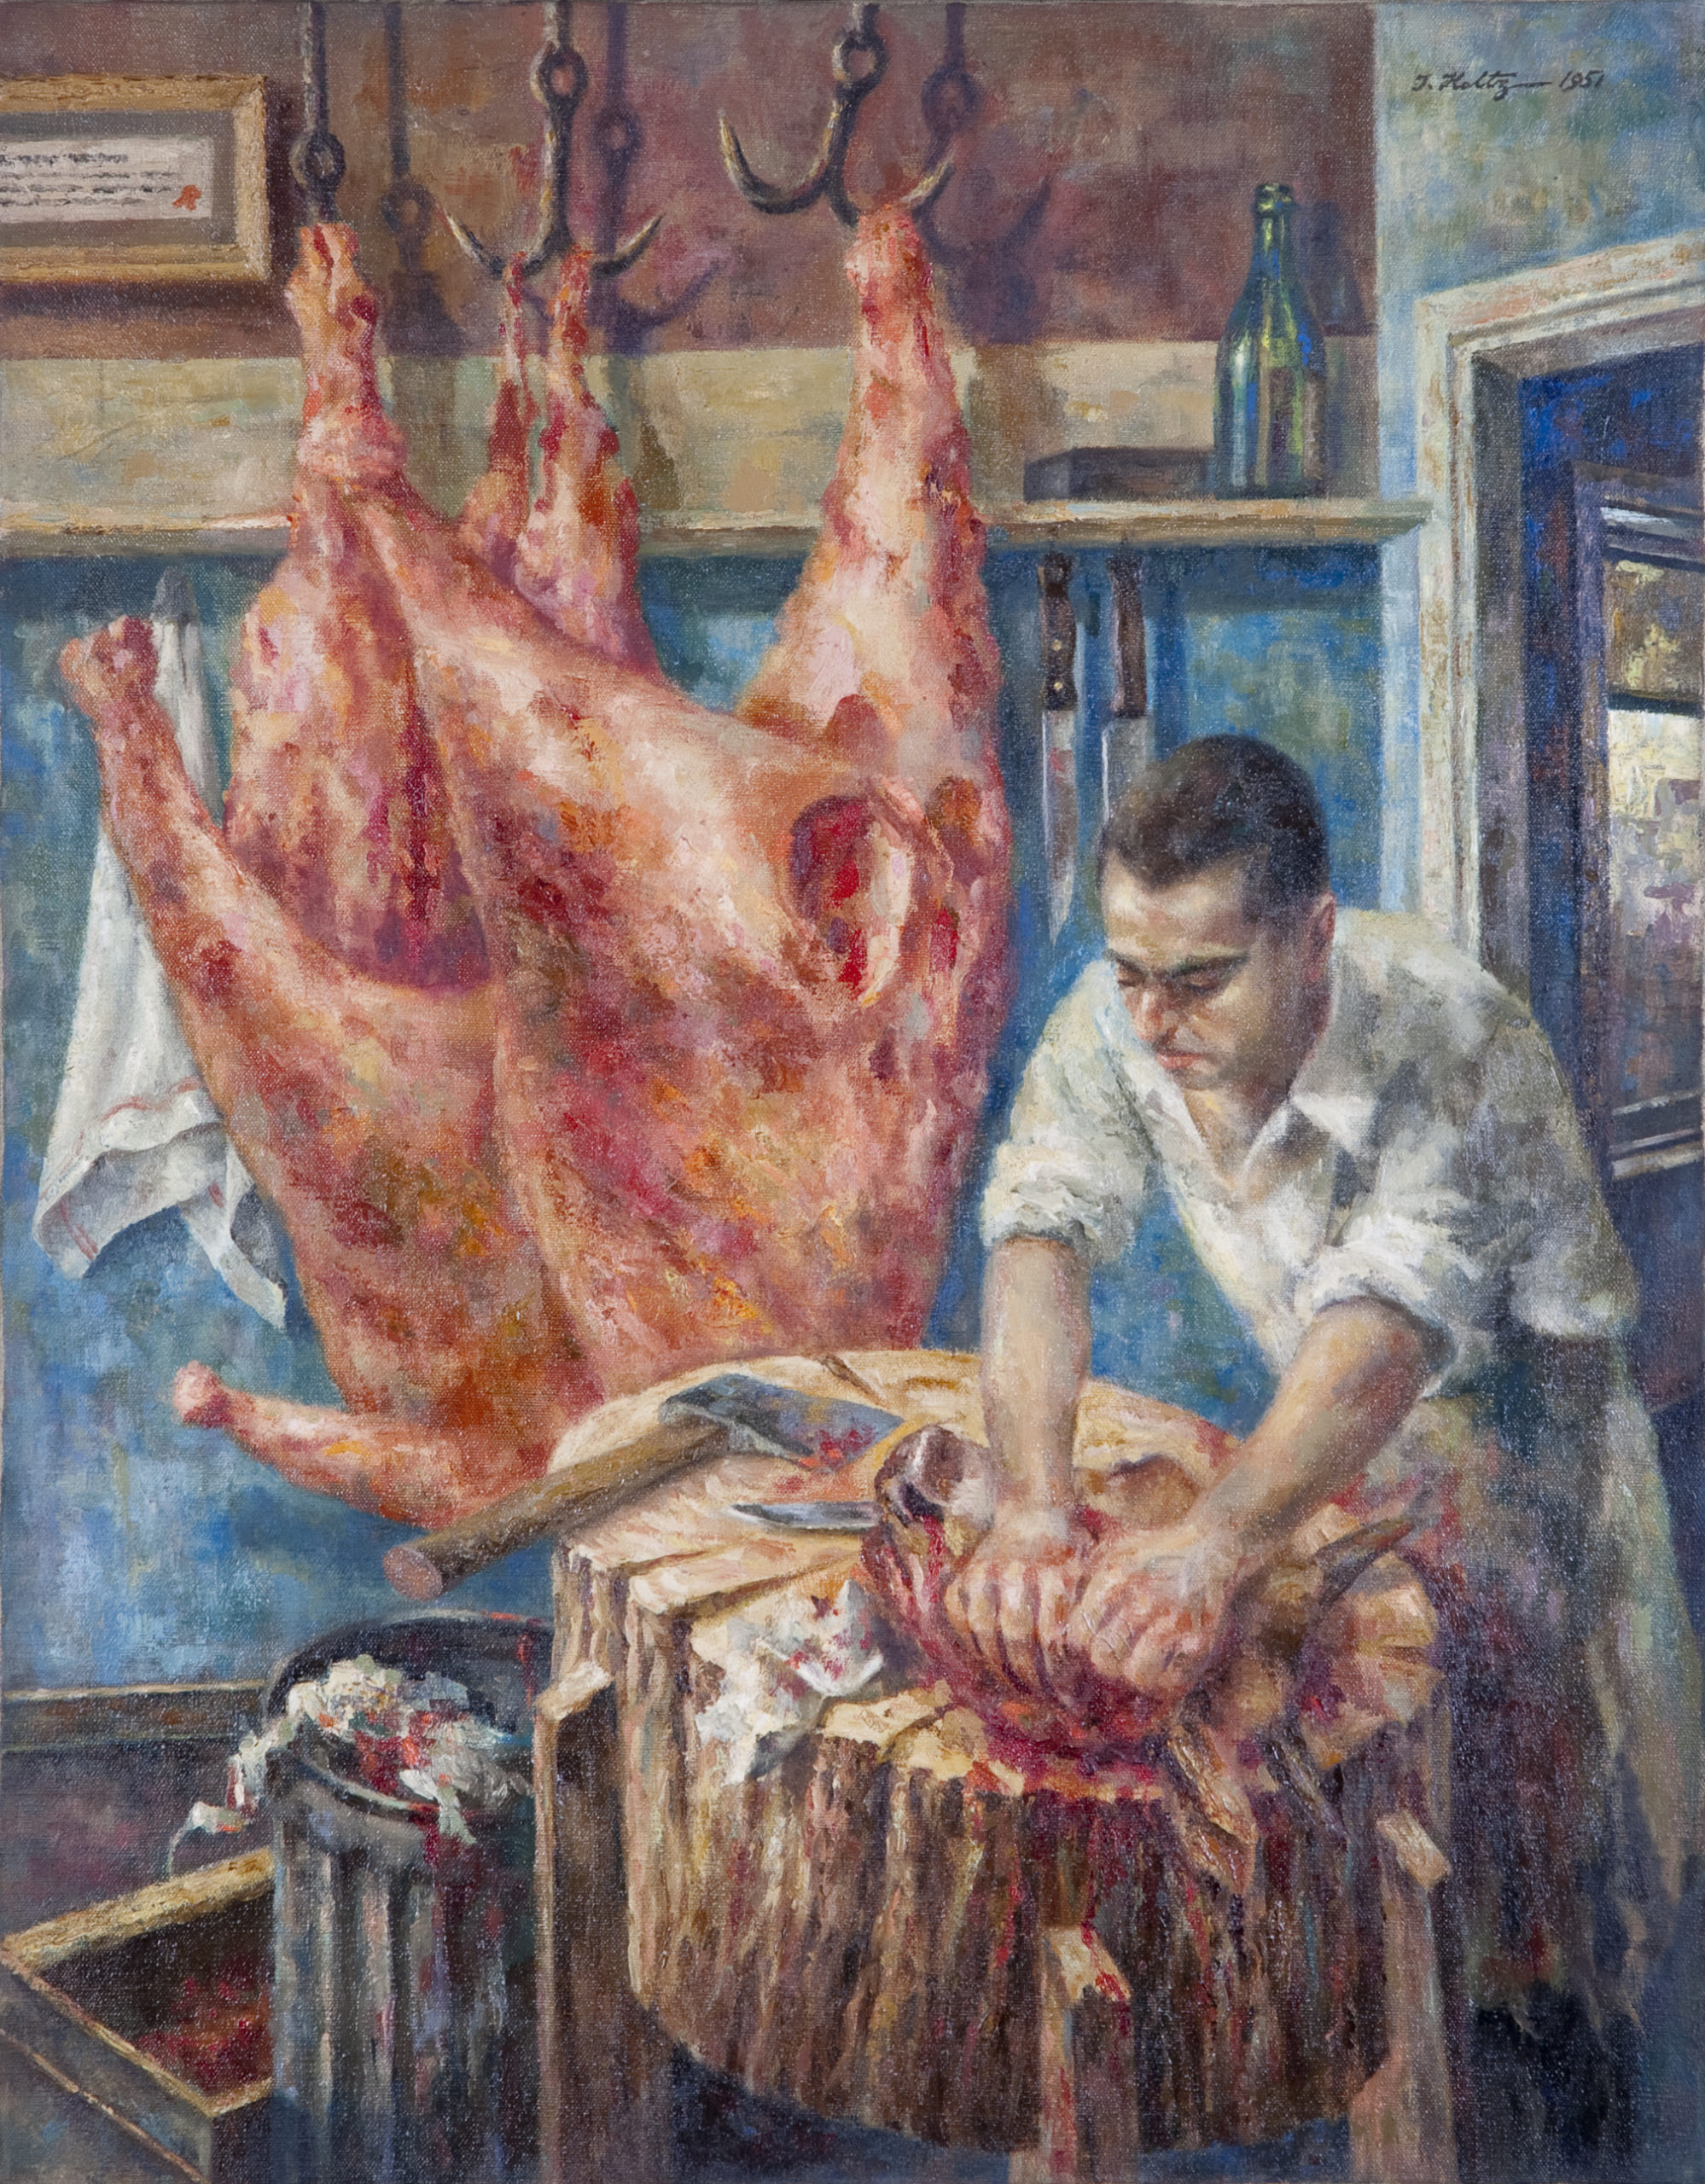 213 Butcher in His Shop 1951 - Oil on Canvas - 22 x 28.25 - No Frame